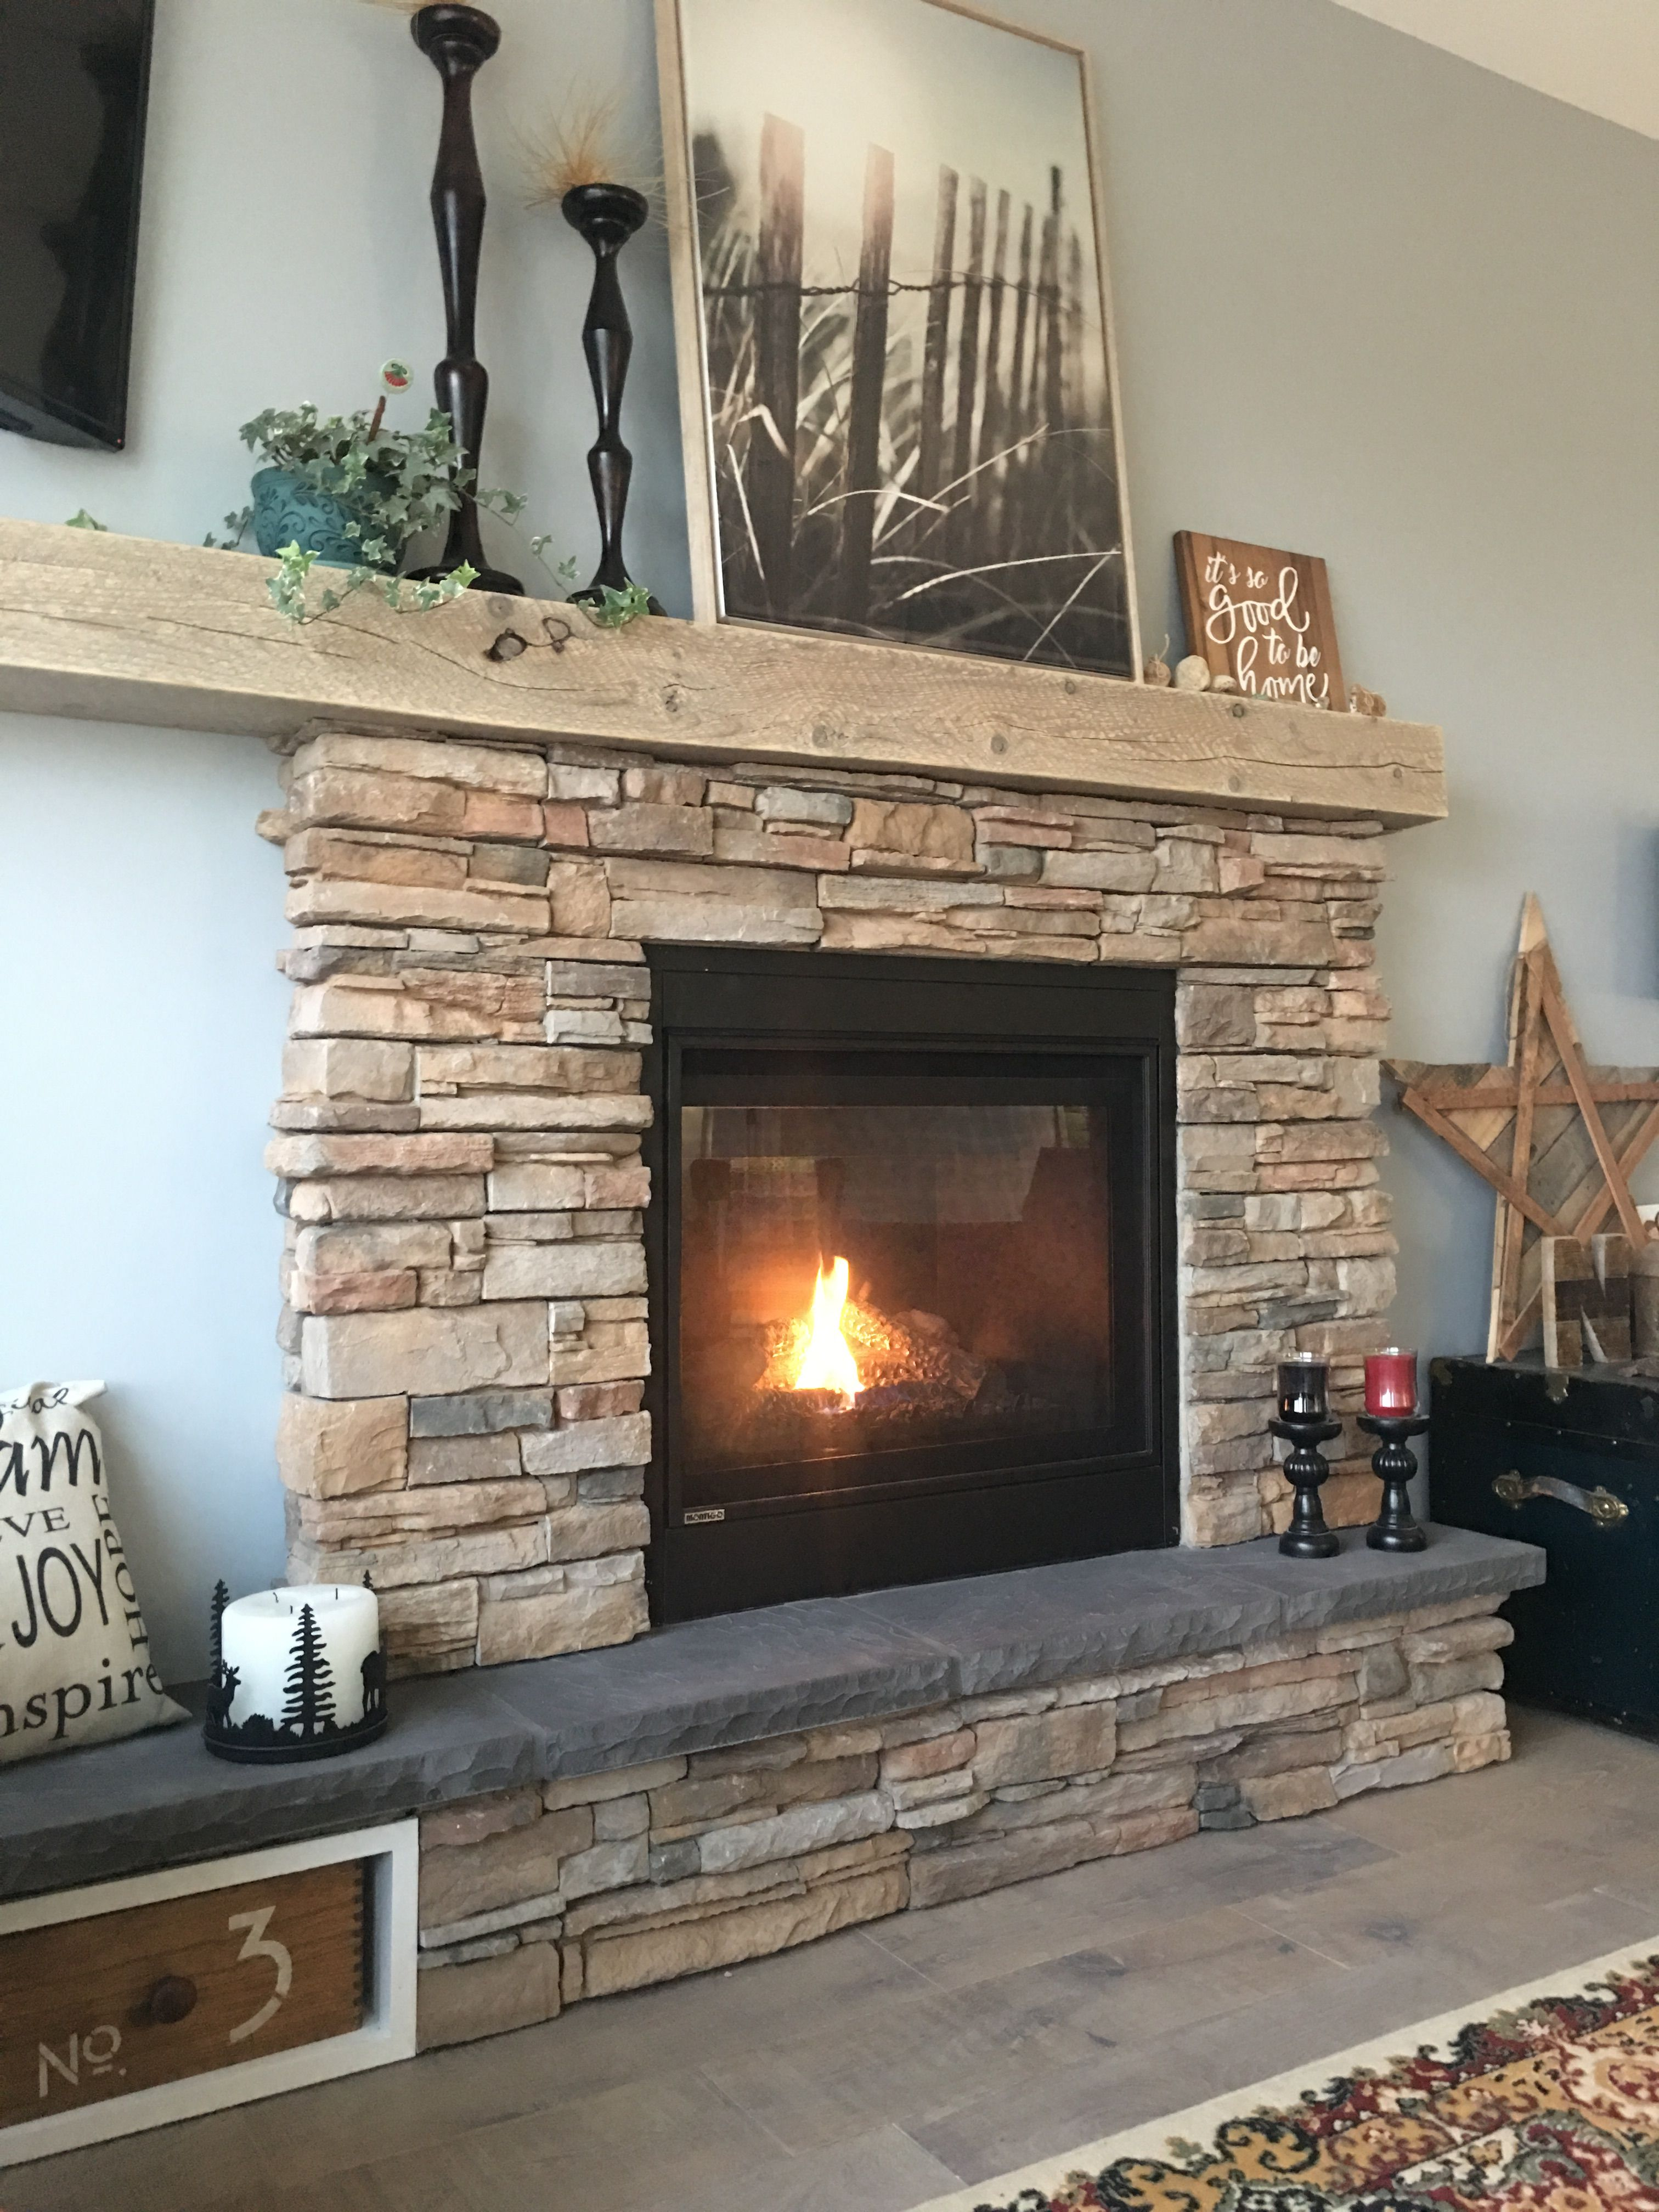 Rustic Stone Fireplace With Asymmetric Mantel And Hearth.